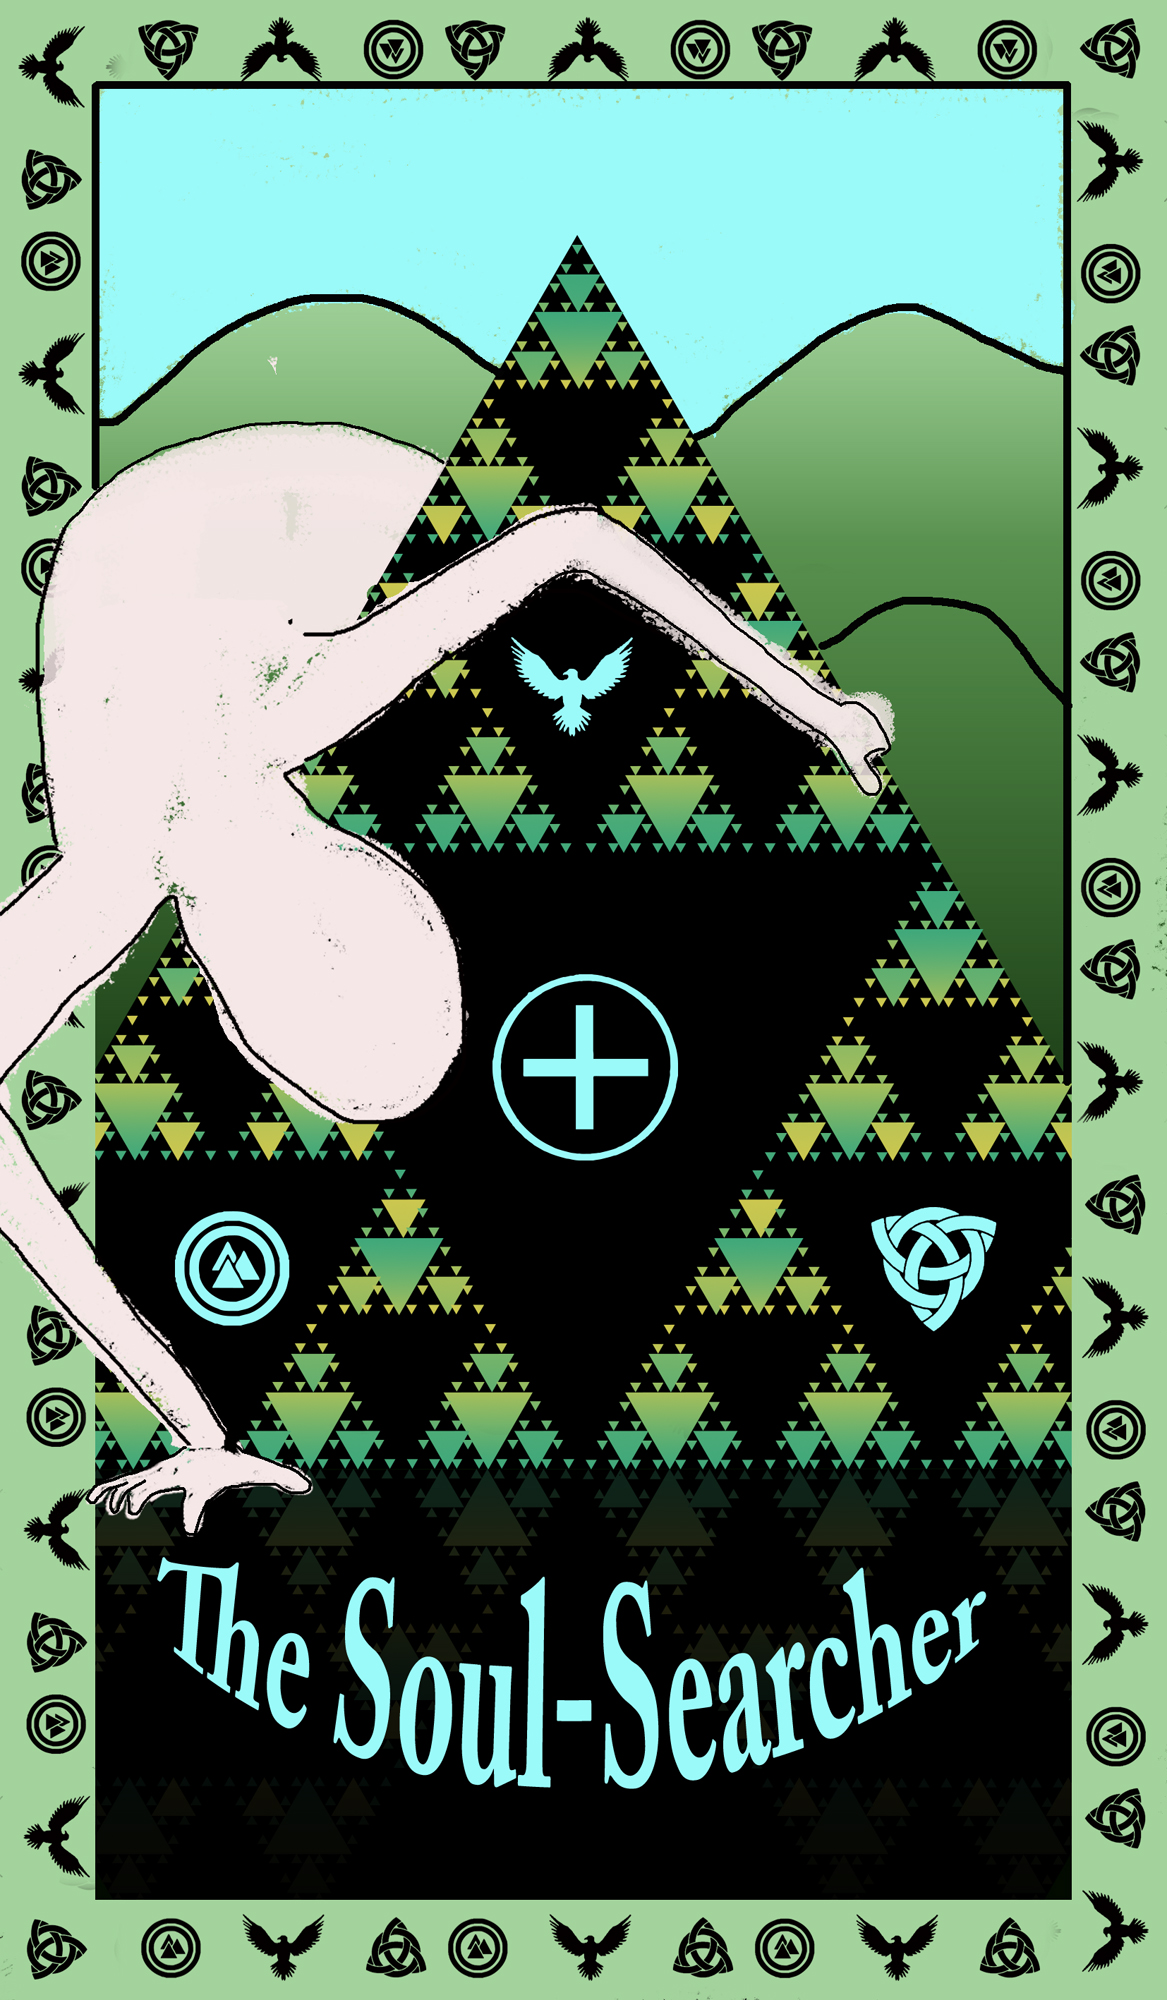 Green figure peers around and into a Sierpiński triangle. Each dark part of the triangle has a different symbol-a Celtic ailm, Celtic knot, Norse valknut, and an eagle